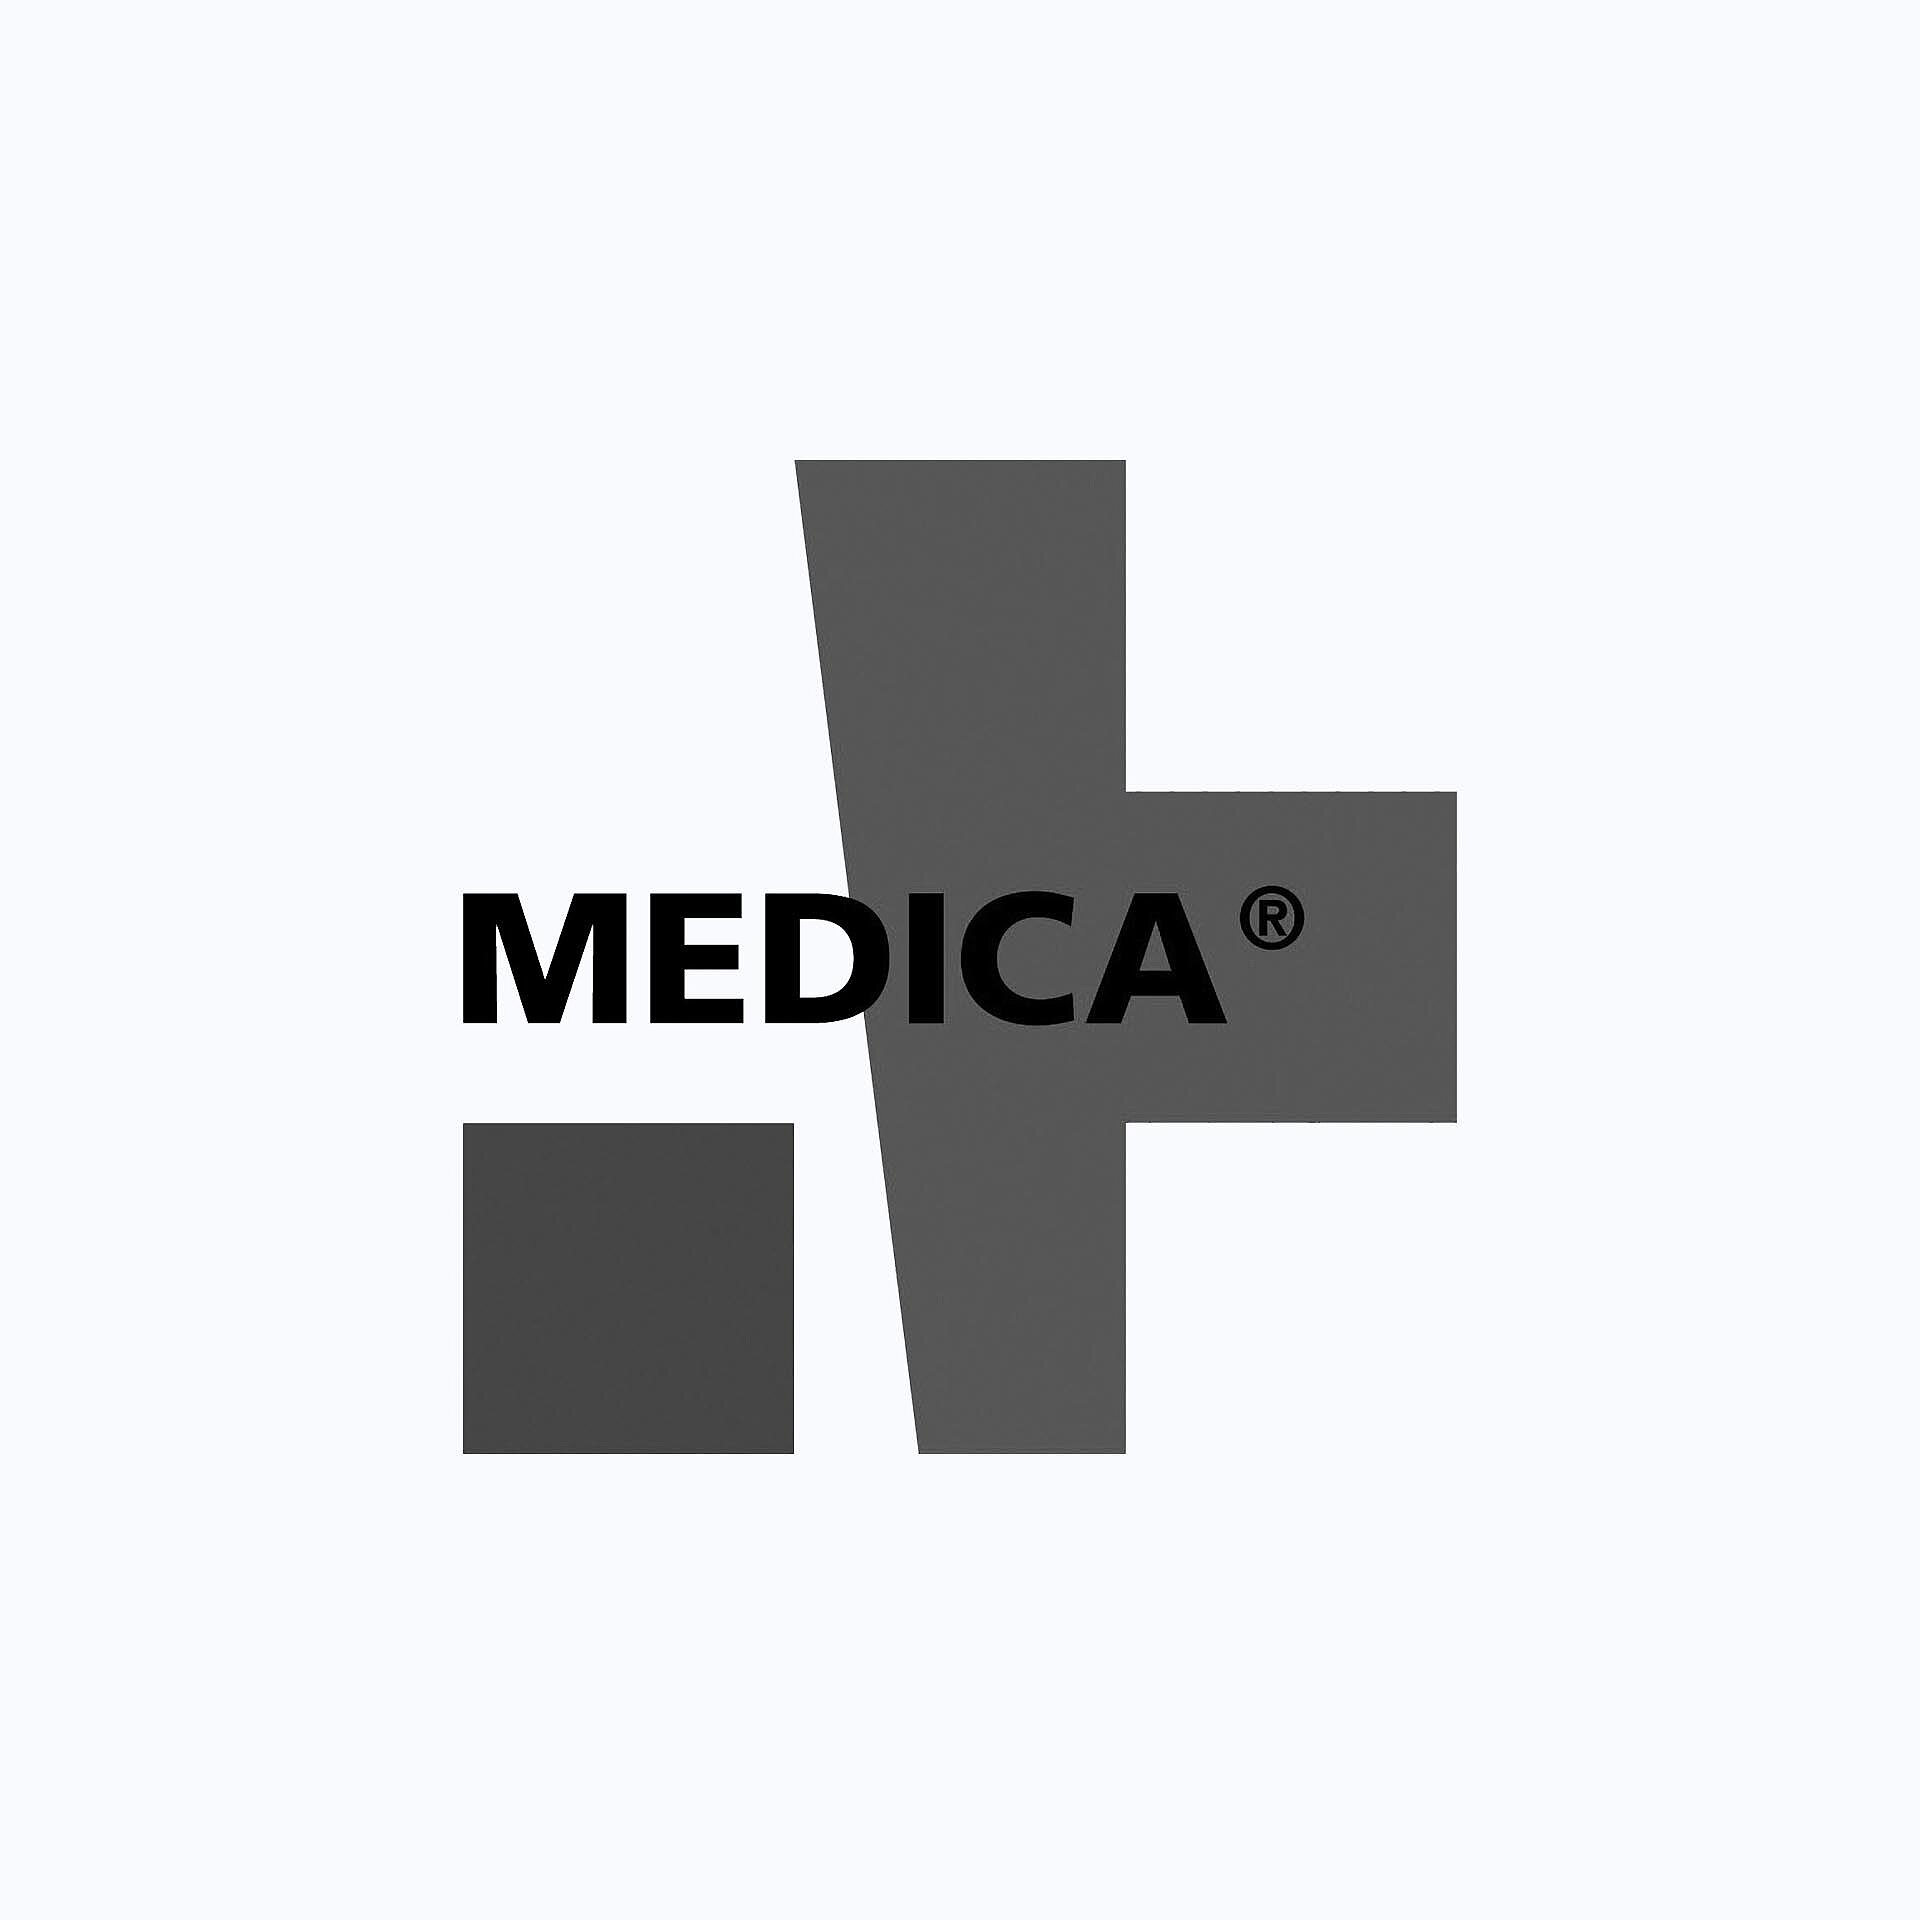 [Translate to Chinese:] medica